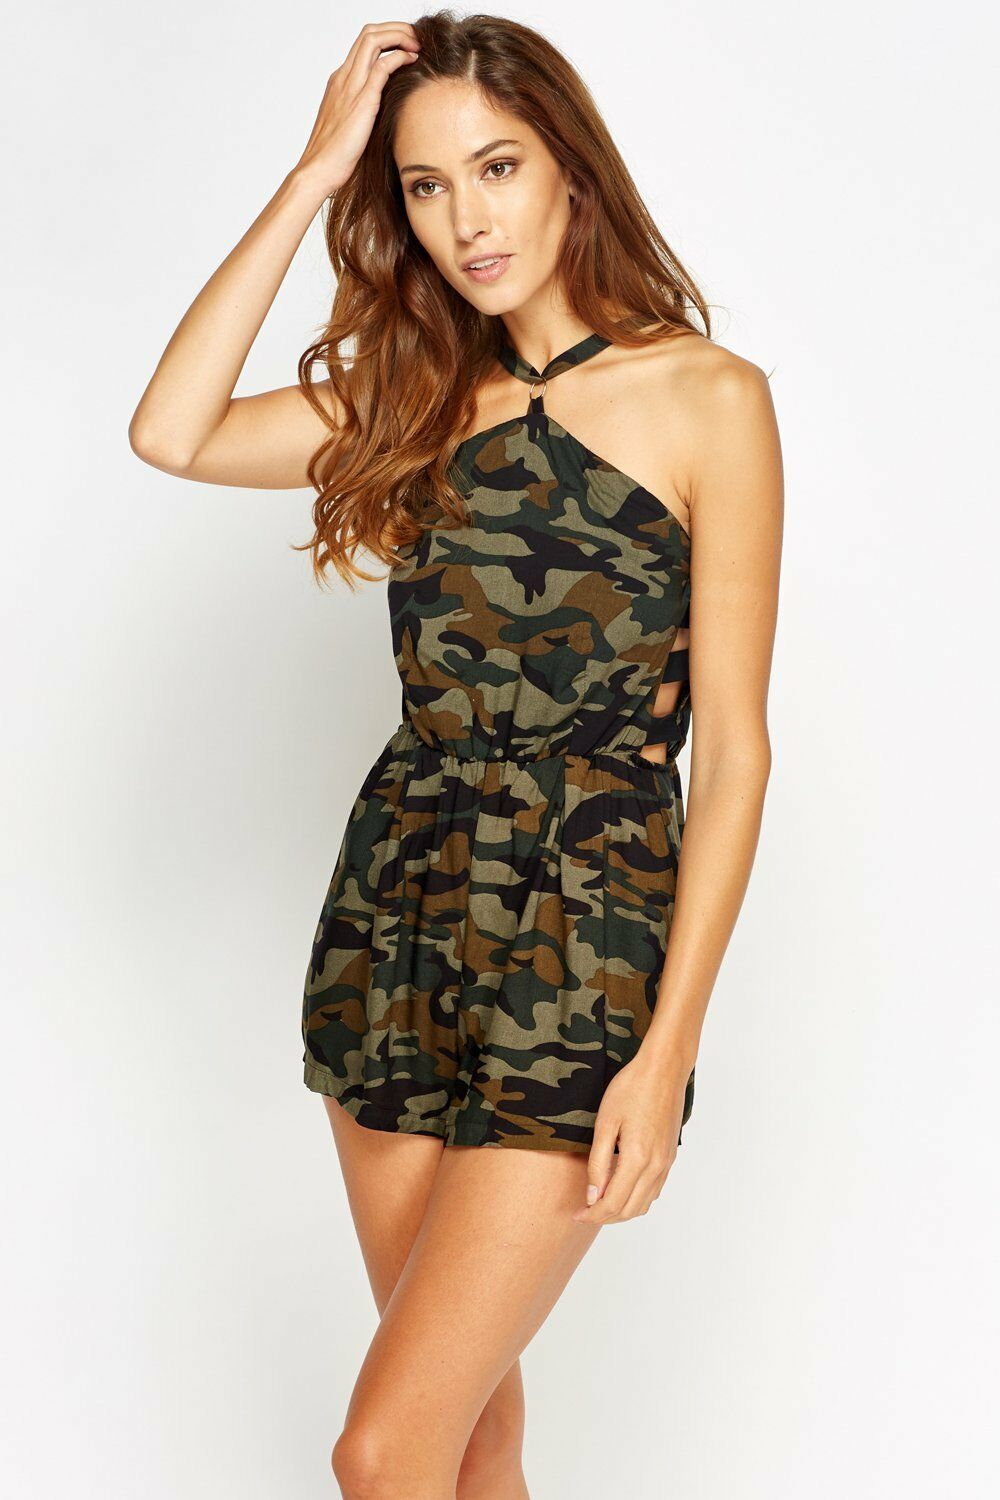 b1746b27efee IN VOUGE PARIS CAMOUFLAGE CUT OUT SIDE TRENDY BLOGGERS PLAYSUIT BNWT  nbcsti7759-Jumpsuits   Playsuits